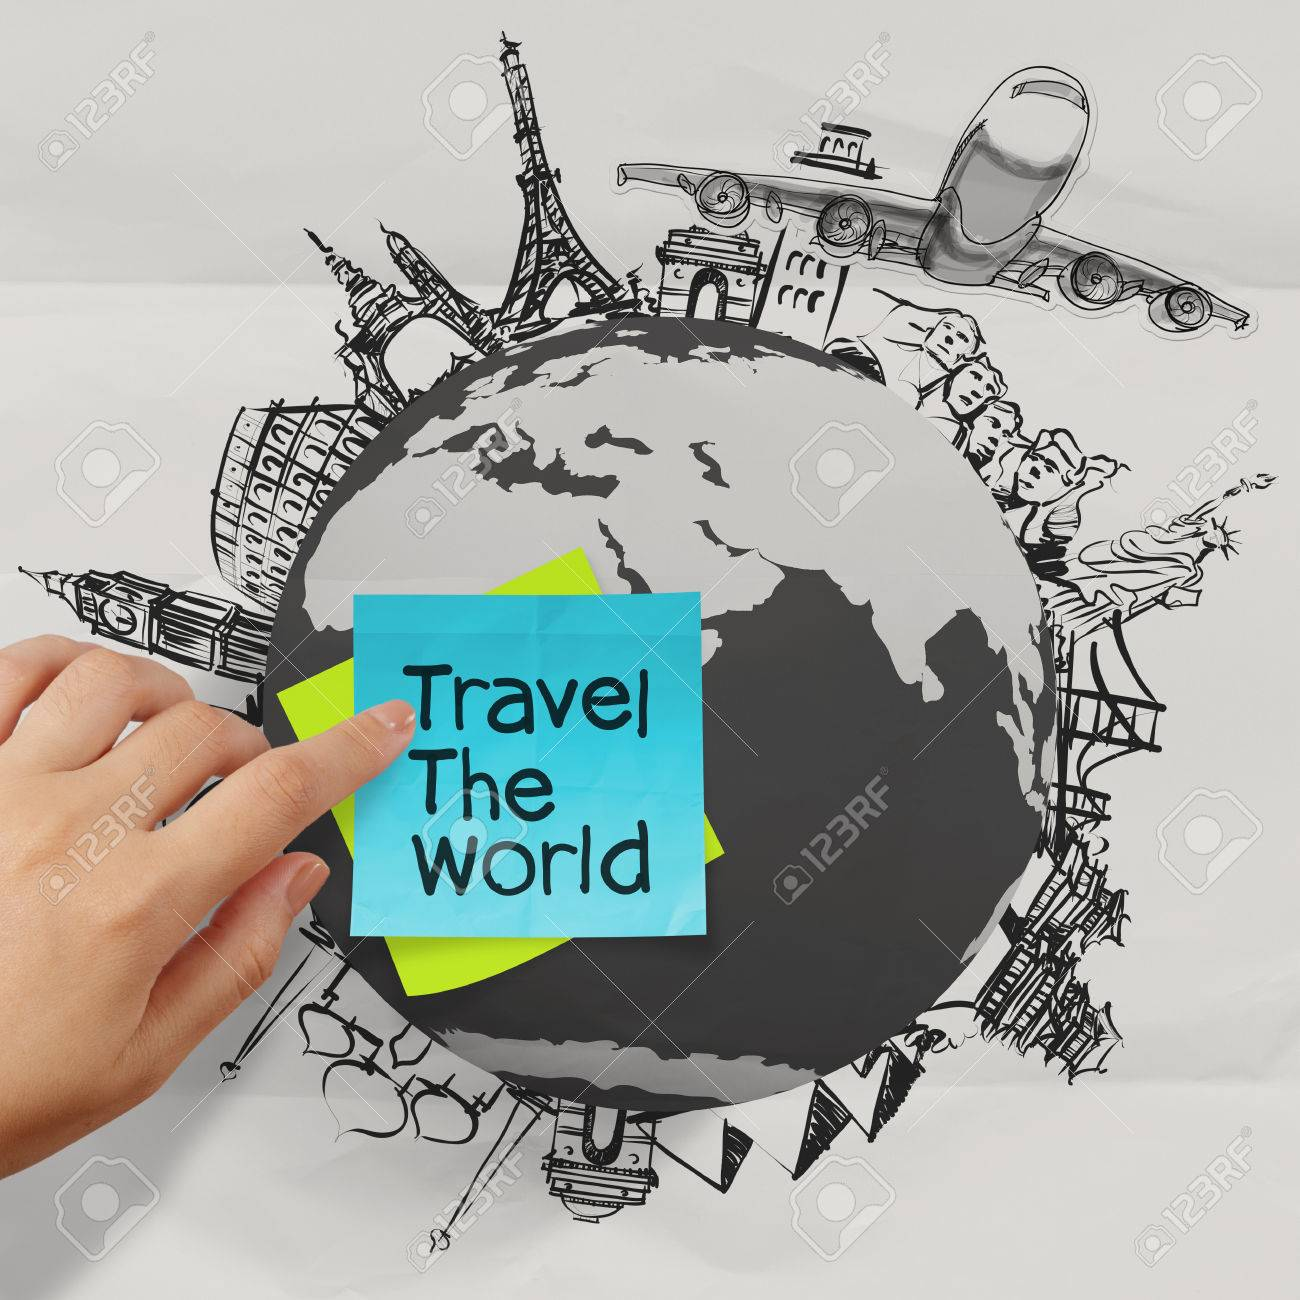 crumpled paper and hand drawn traveling around the world as vintage style concept Stock Photo - 23401656